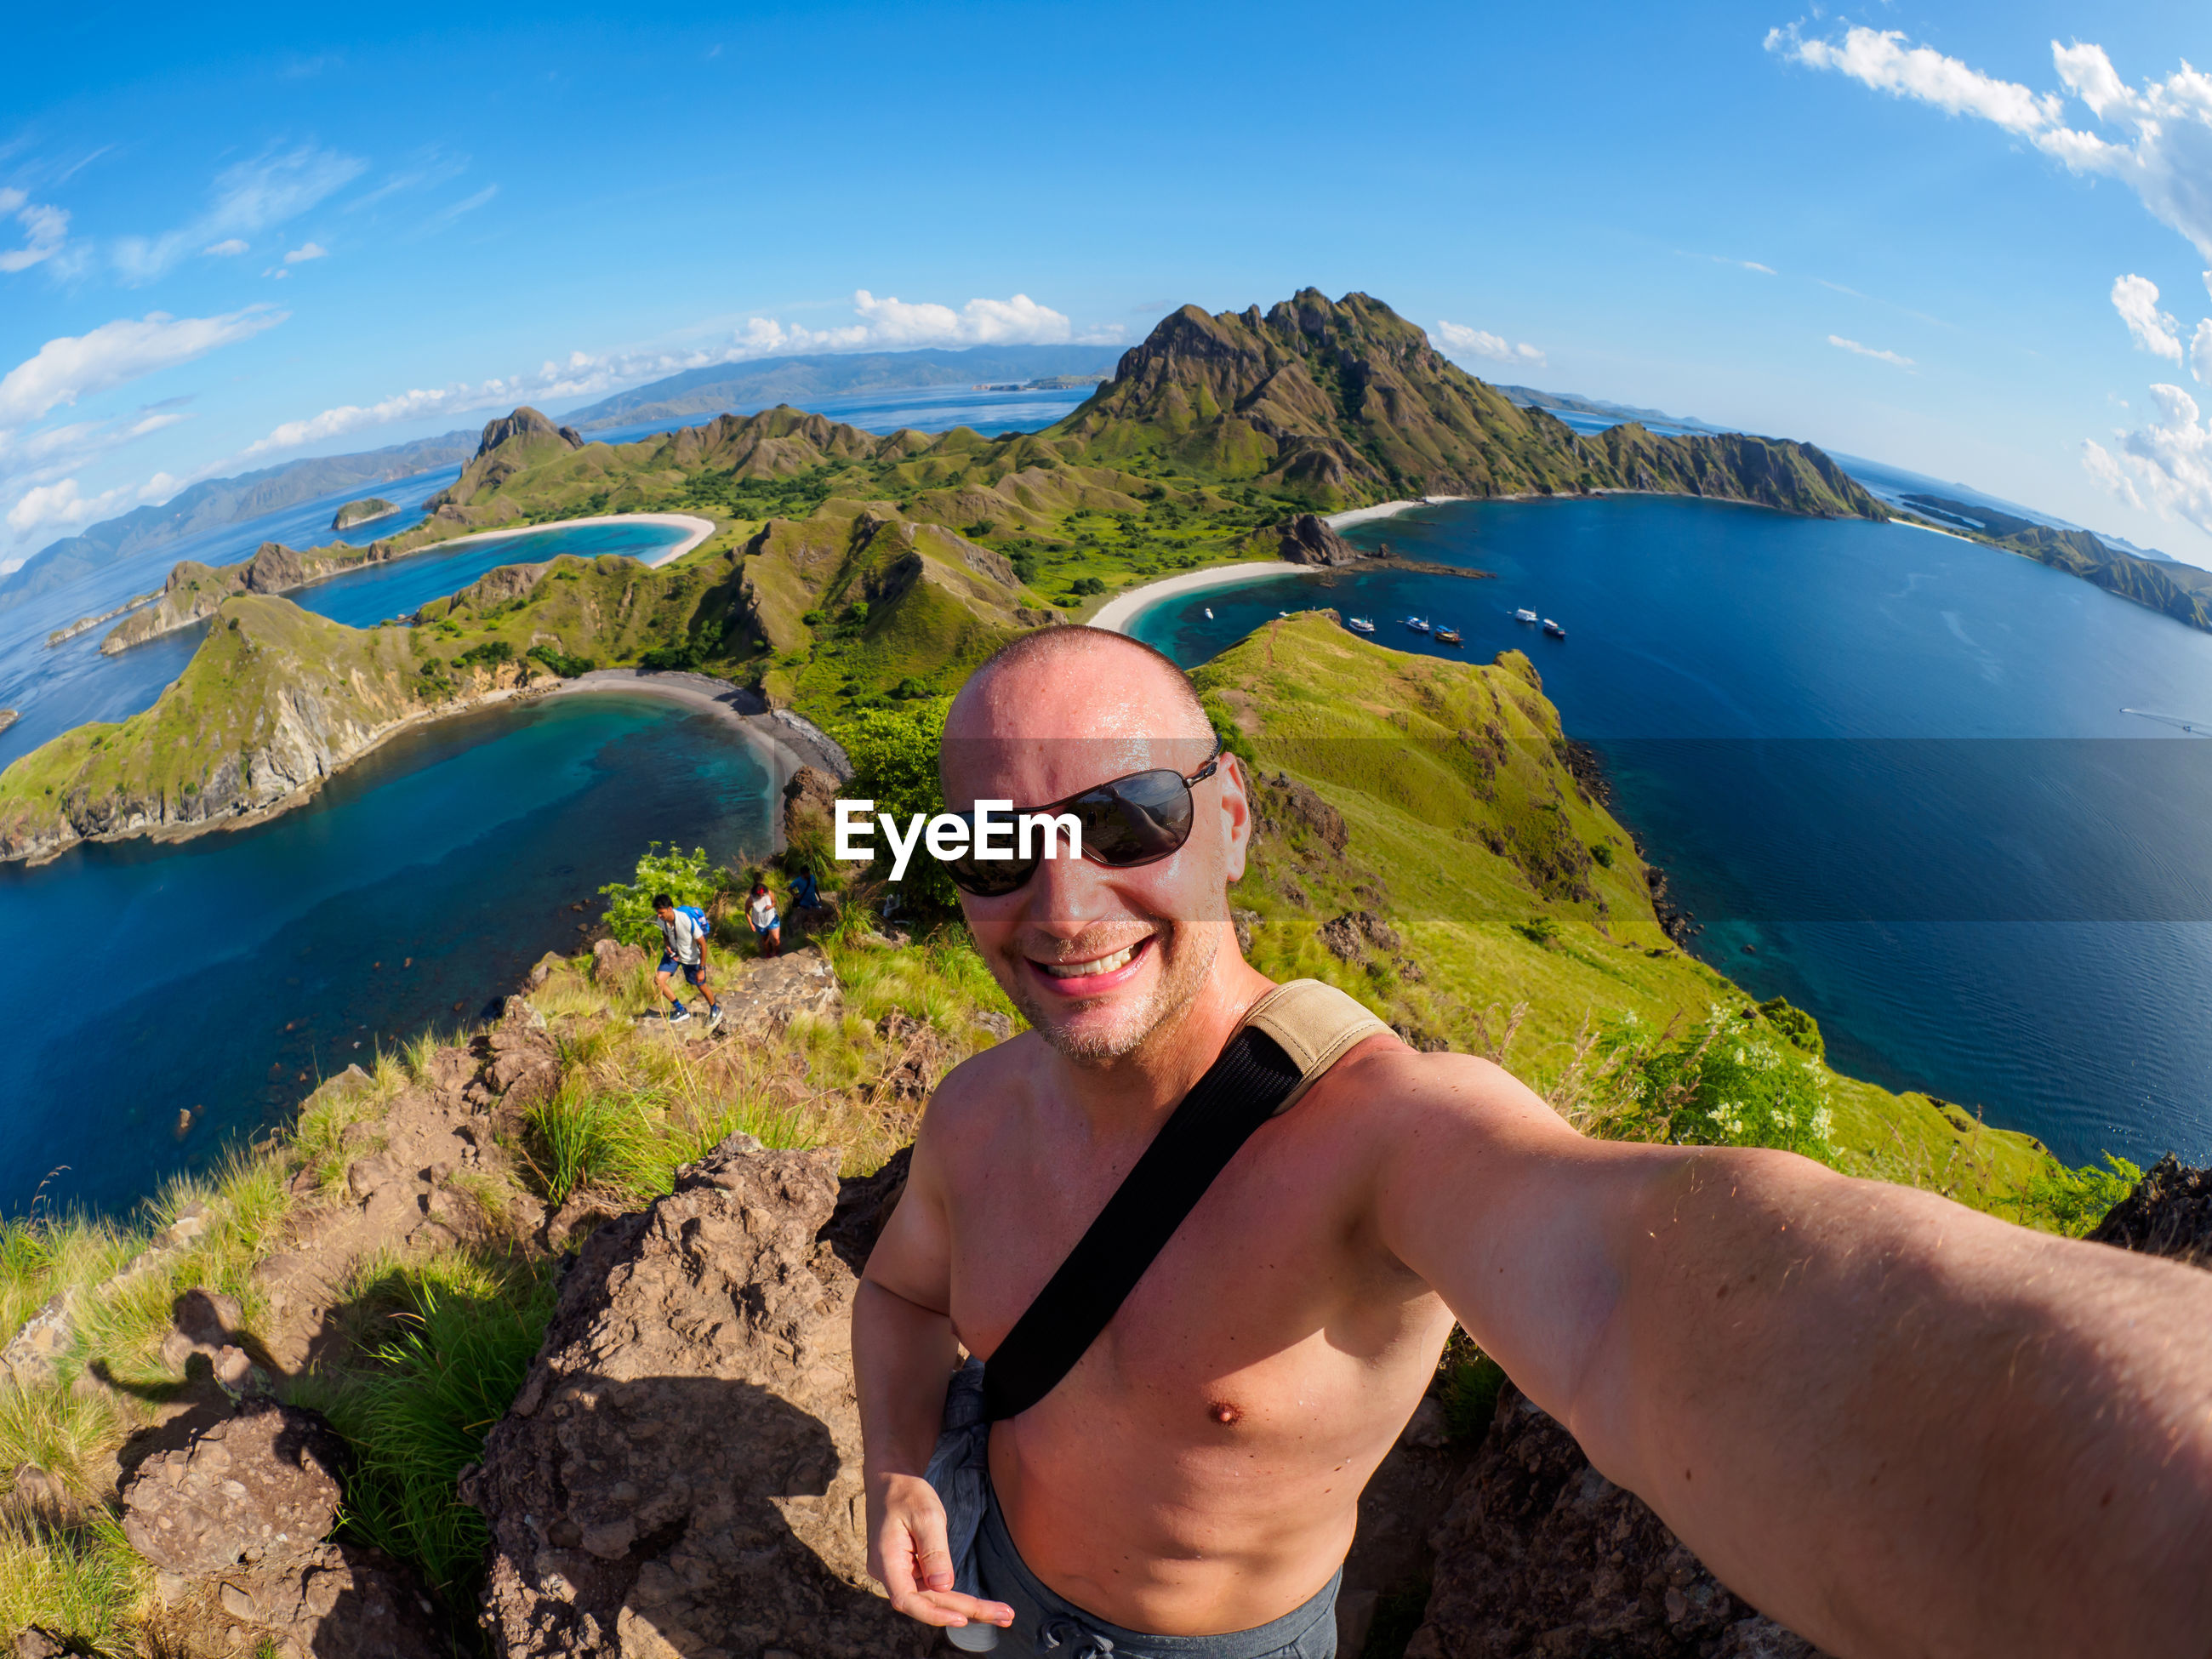 Fish-eye lens portrait of shirtless man standing on cliff by sea